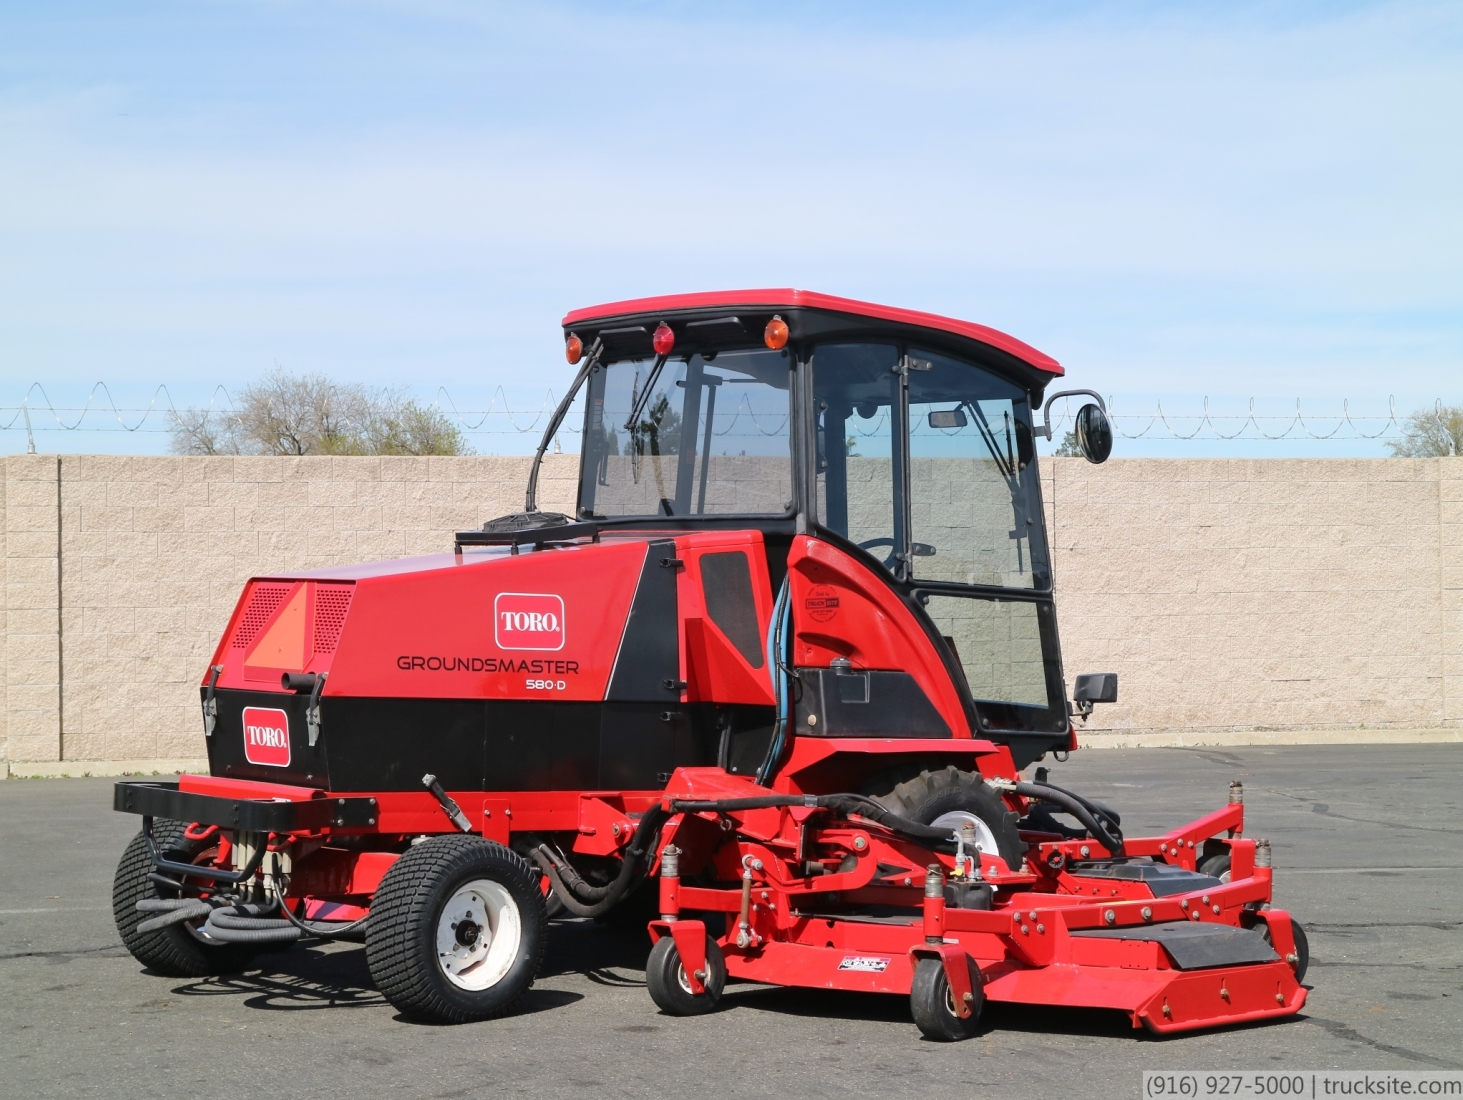 Toro Groundsmaster 580 D 4wd Riding Mower For Sale